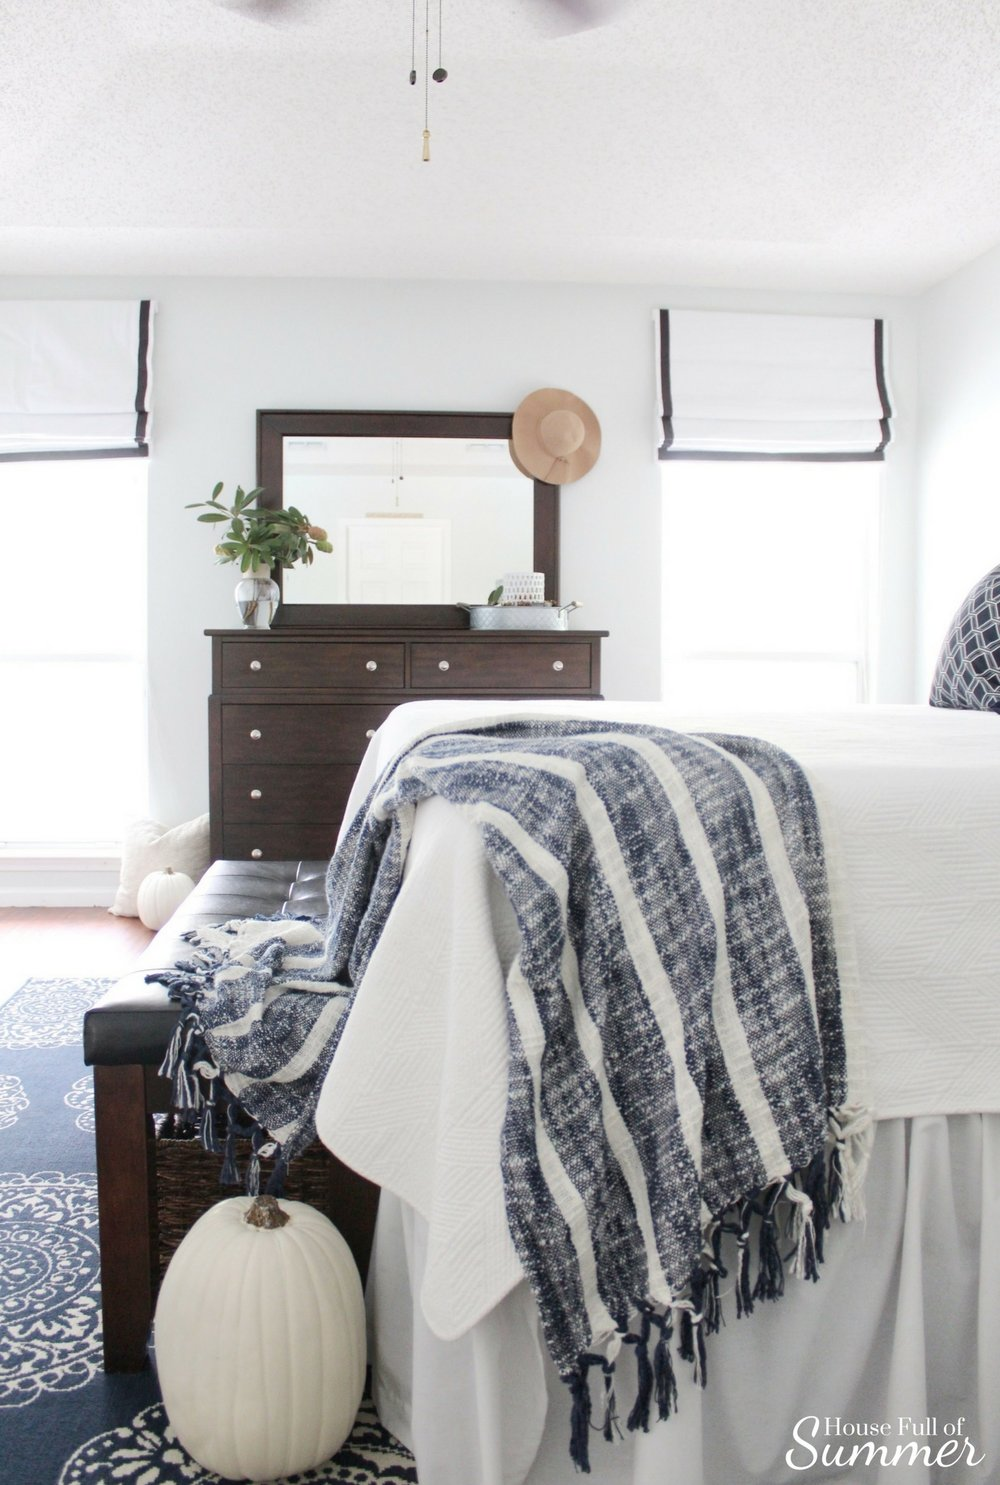 House Full of Summer: Fall Home Tour Blog Hop - Cozy, Coastal, Chic  Master Bedroom decor,  decorating on a budget, fall decor ideas, coastal bedroom ideas, tray styling, diy fall decor, roman shades, pottery barn style, blue and white bedroom decor, navy and white, navy rug, indoor/outdoor area rug, fall styling, nautical decor